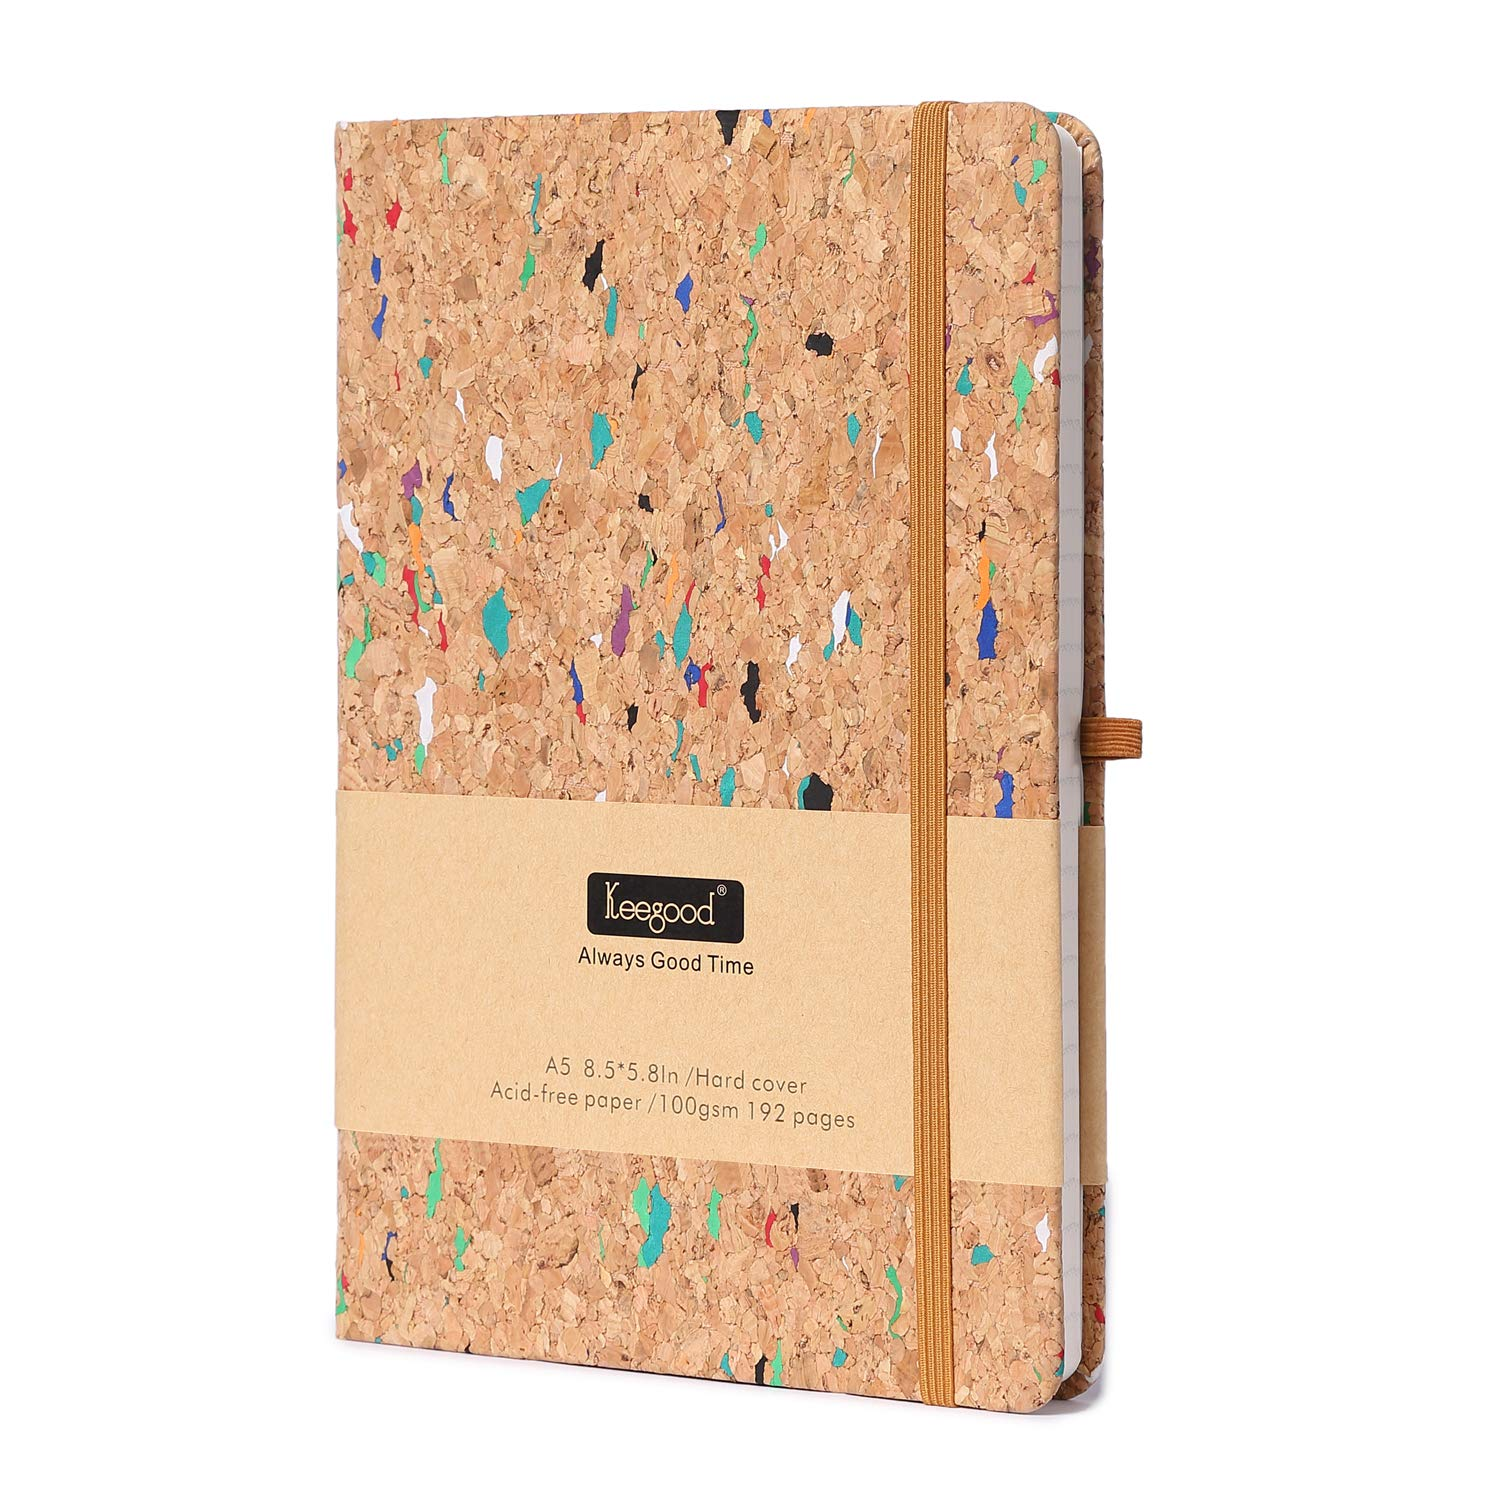 Dot Grid Paper Notebooks and Journals,Writing Journal with Pen loop,Dot Journal A5,Hard Cover Writing Notebook with Paper Pocket,8.5x 5.8IN,Wood Color, Premium Thick Paper 192 Pages for School Season